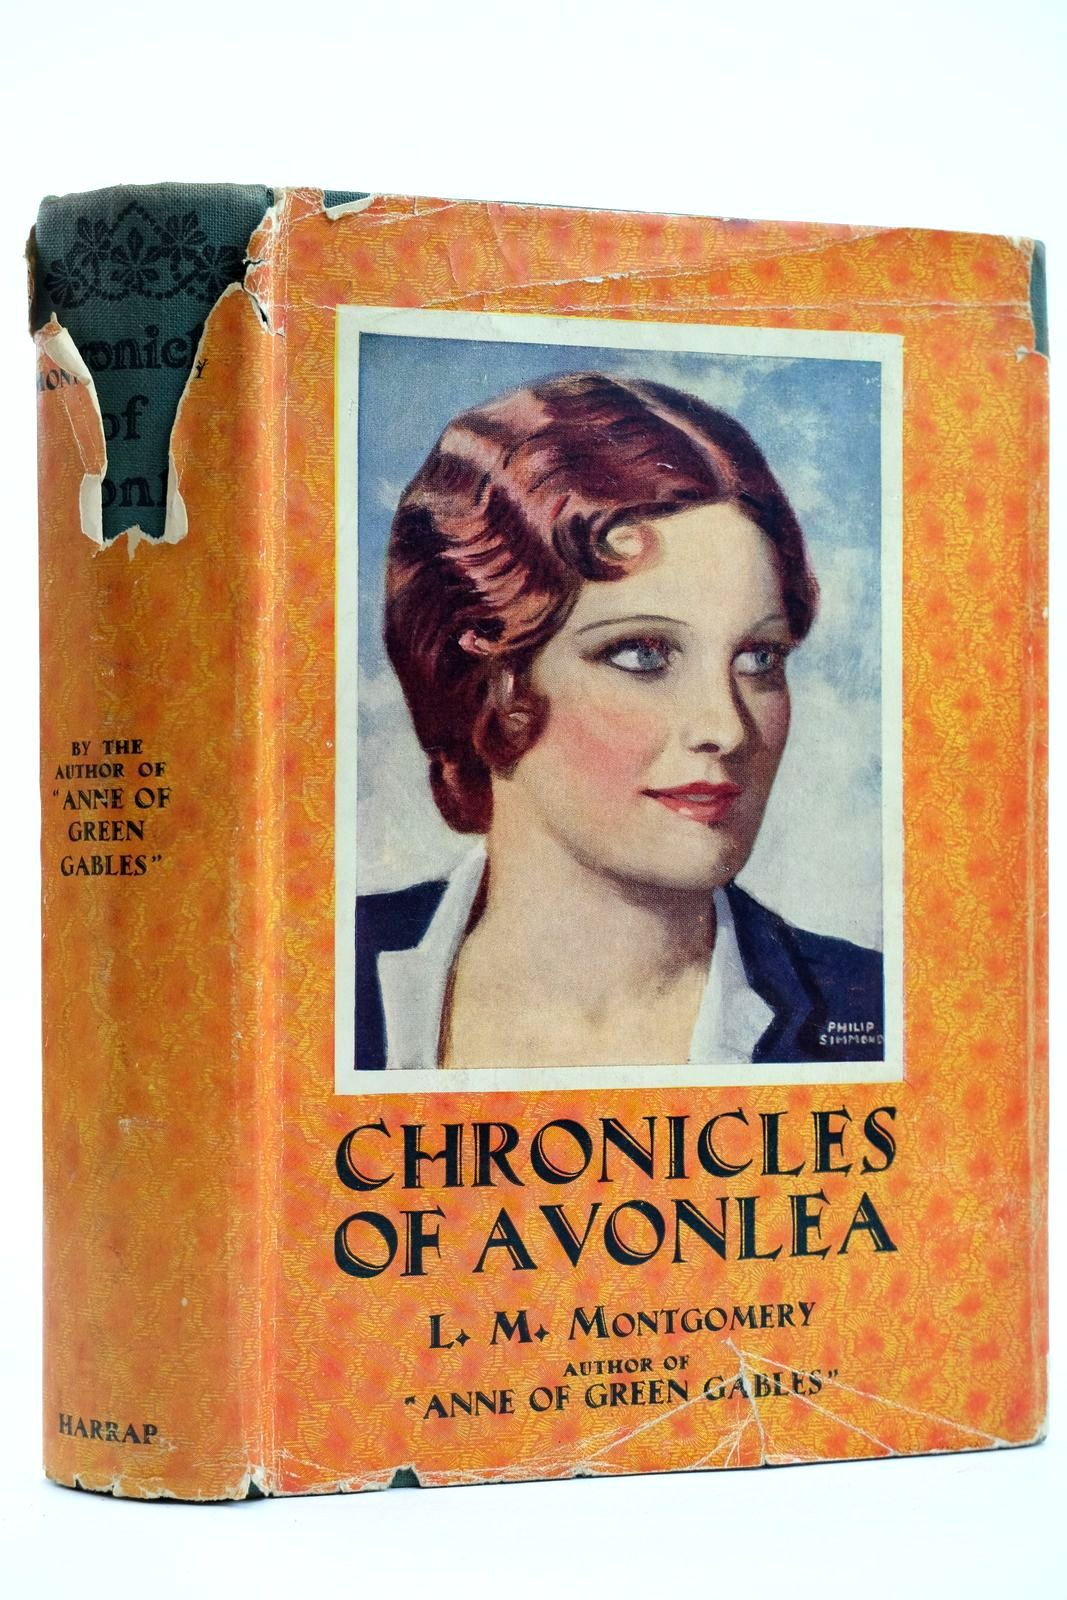 Photo of CHRONICLES OF AVONLEA written by Montgomery, L.M. published by George G. Harrap & Co. Ltd. (STOCK CODE: 2131793)  for sale by Stella & Rose's Books